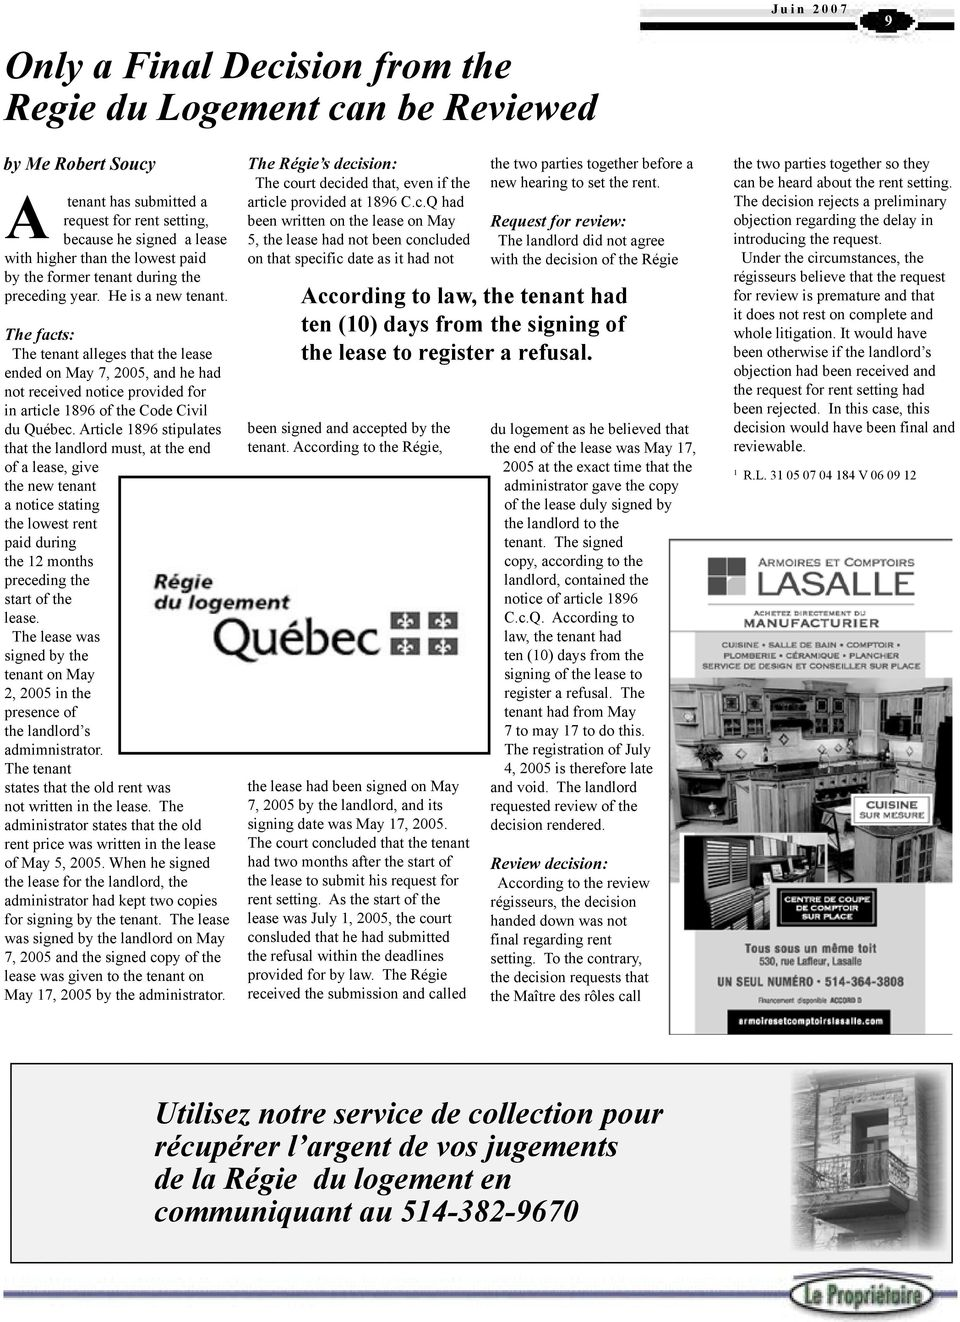 The facts: The tenant alleges that the lease ended on May 7, 2005, and he had not received notice provided for in article 1896 of the Code Civil du Québec.